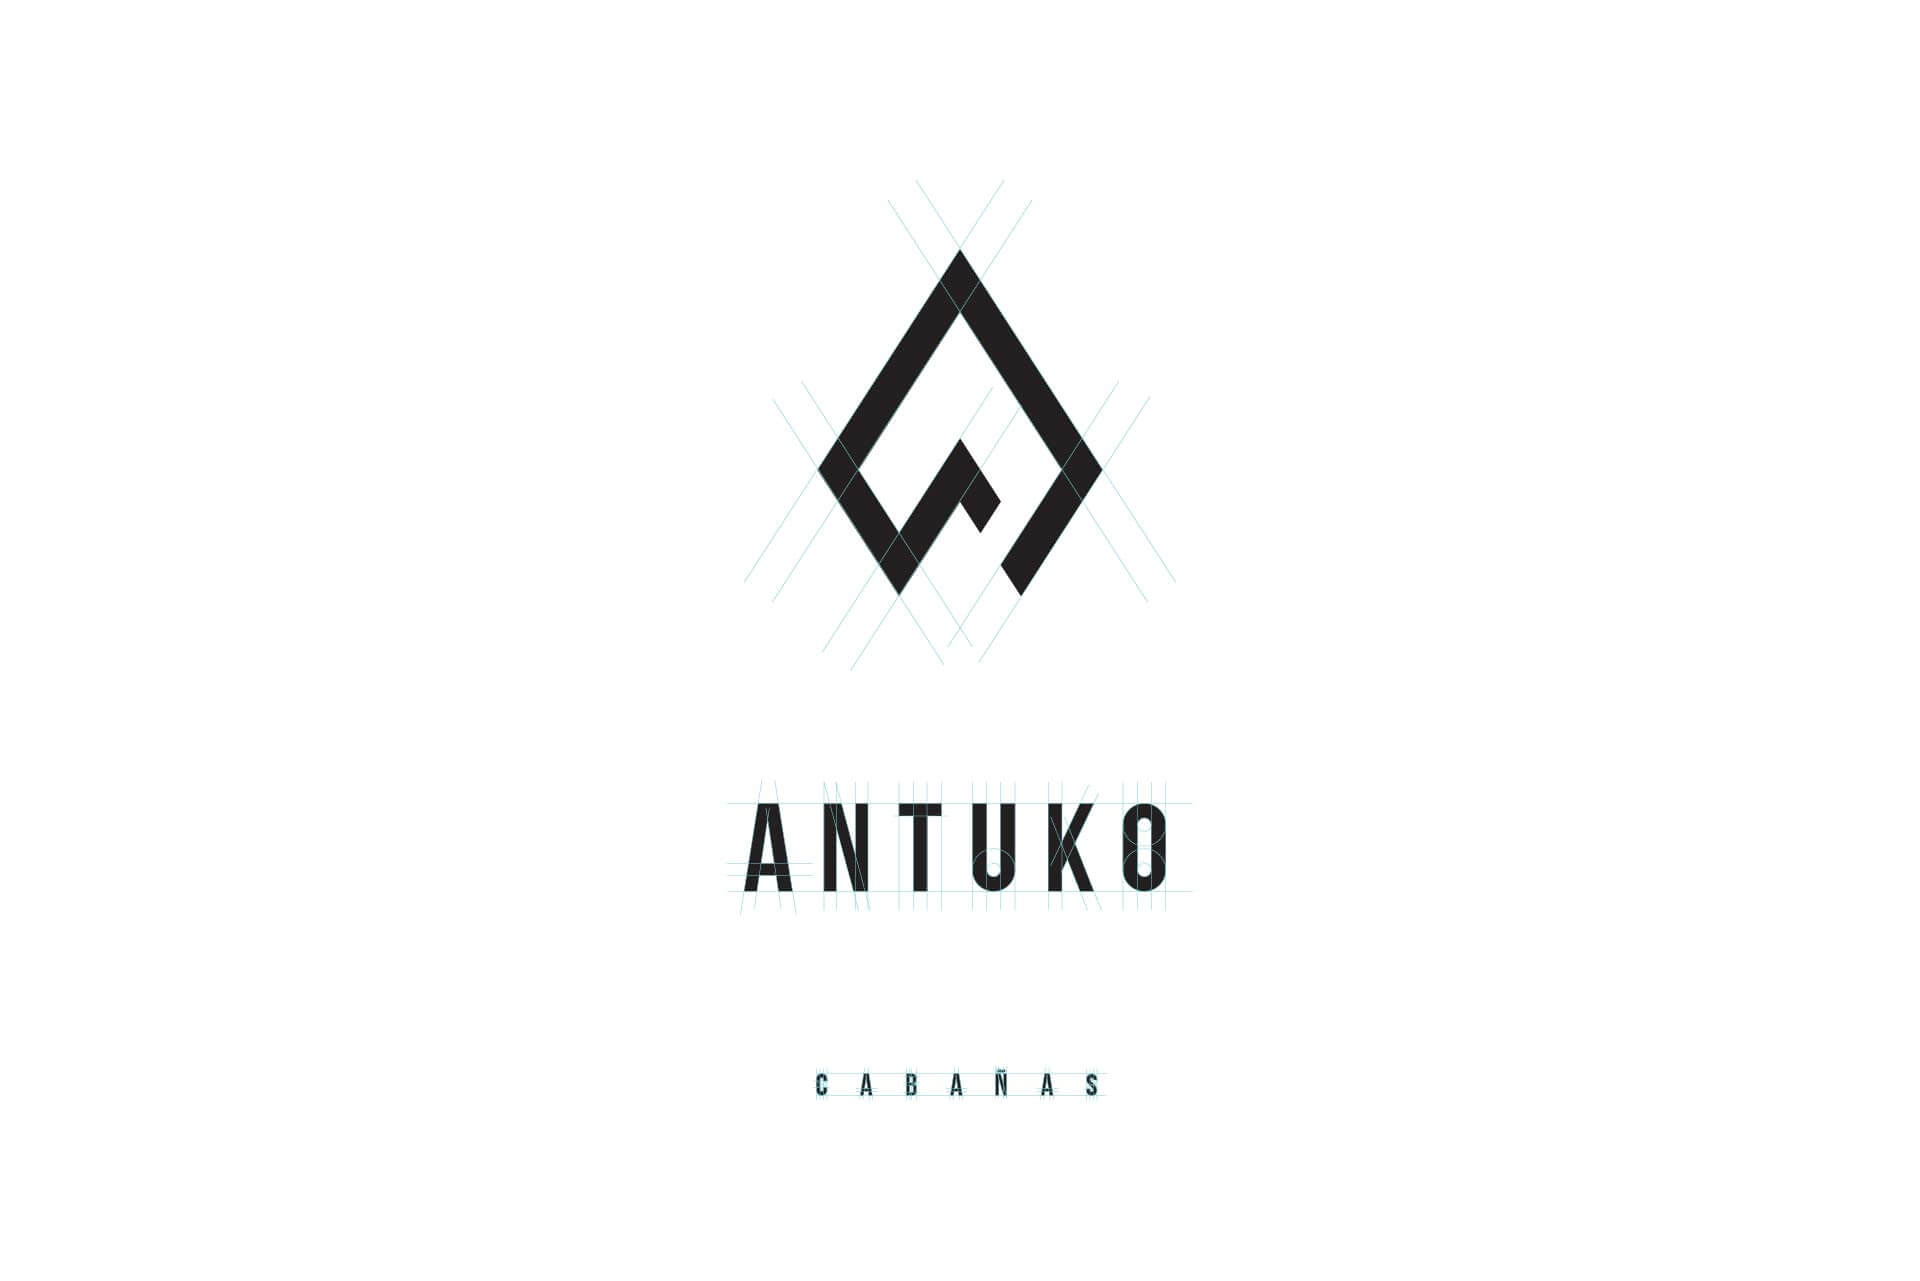 Antuco Chile - Antuko Branding by markos-esther